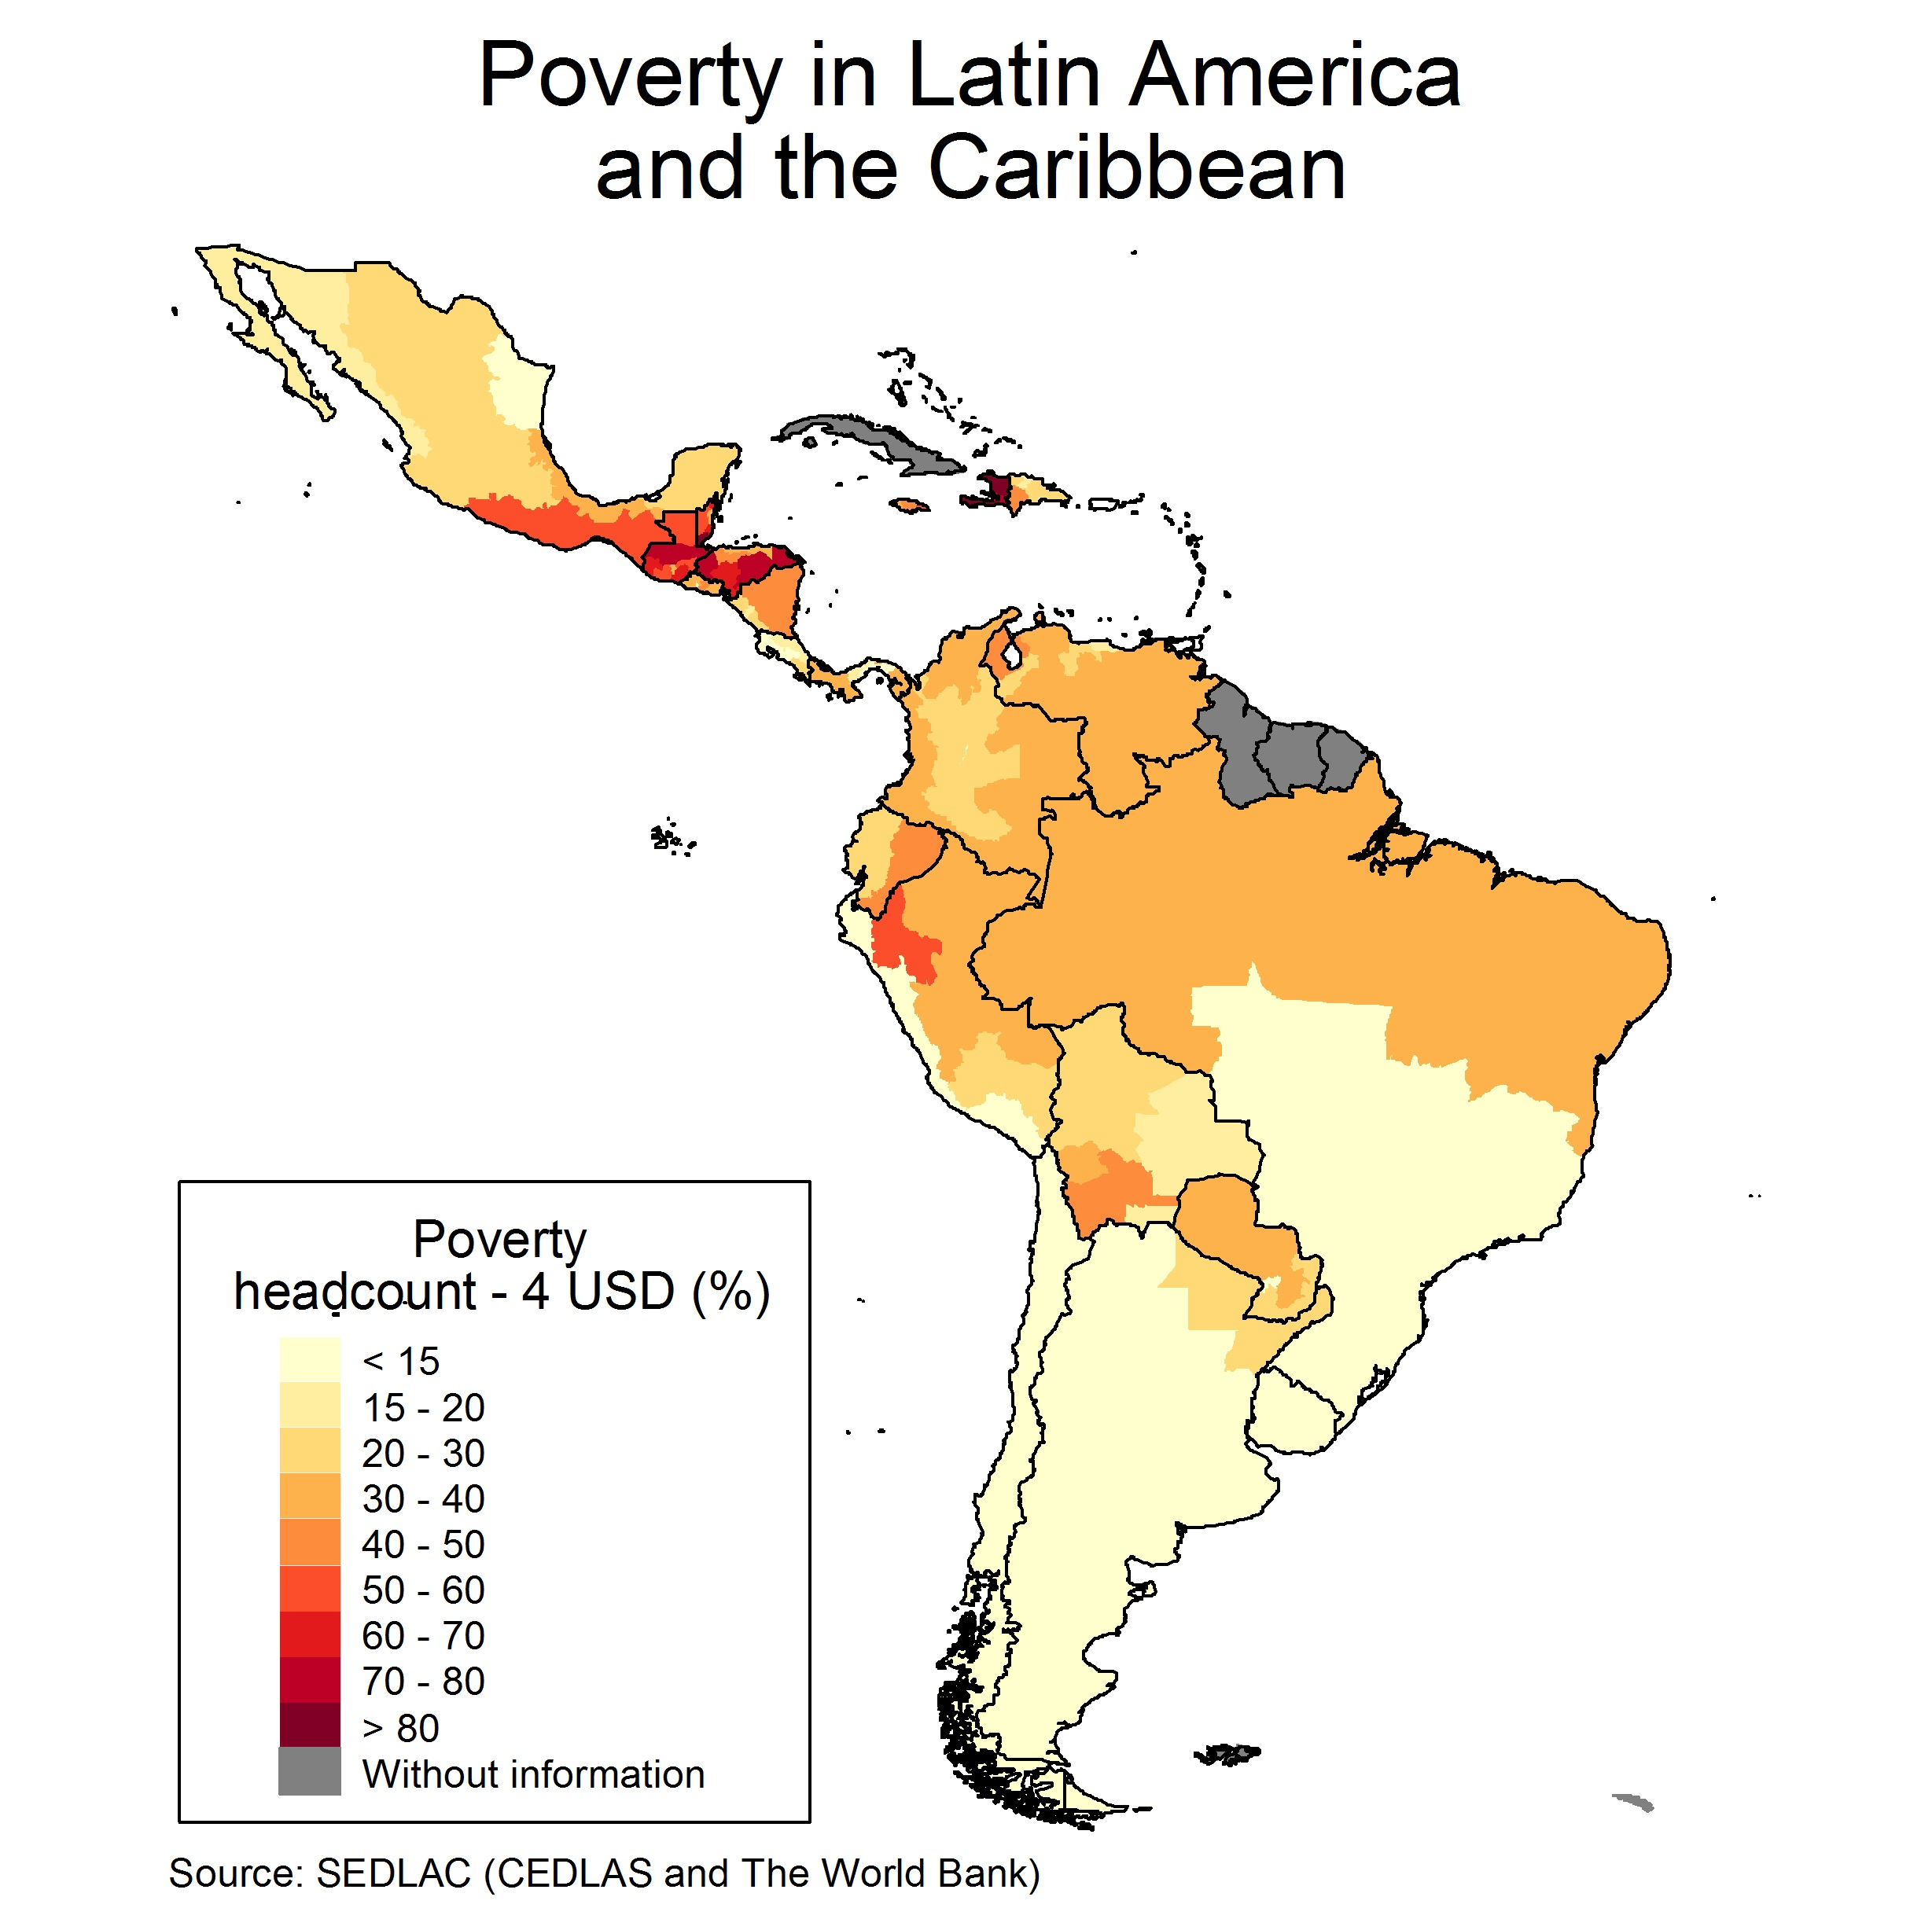 poverty in latin america Topical research digest: revisiting human rights in latin america 31 child labor in latin america: poverty as cause and effect by michaelle tauson throughout much of the developing world, children make up an alarming portion of the.